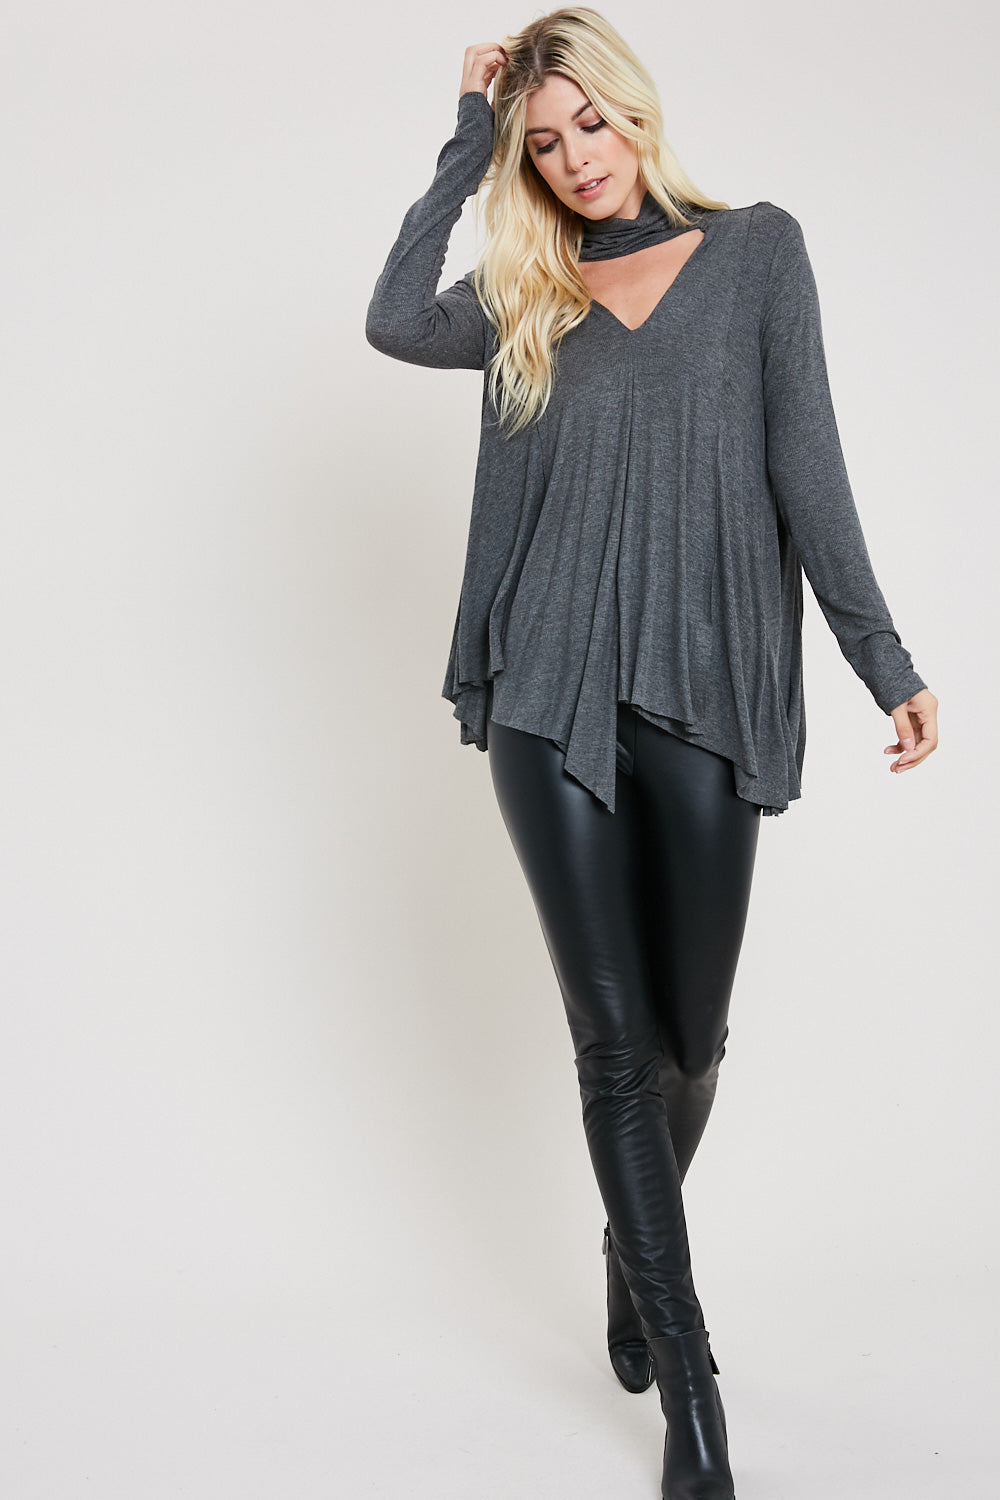 Asymmetrical Hem Cut-out Swing Top